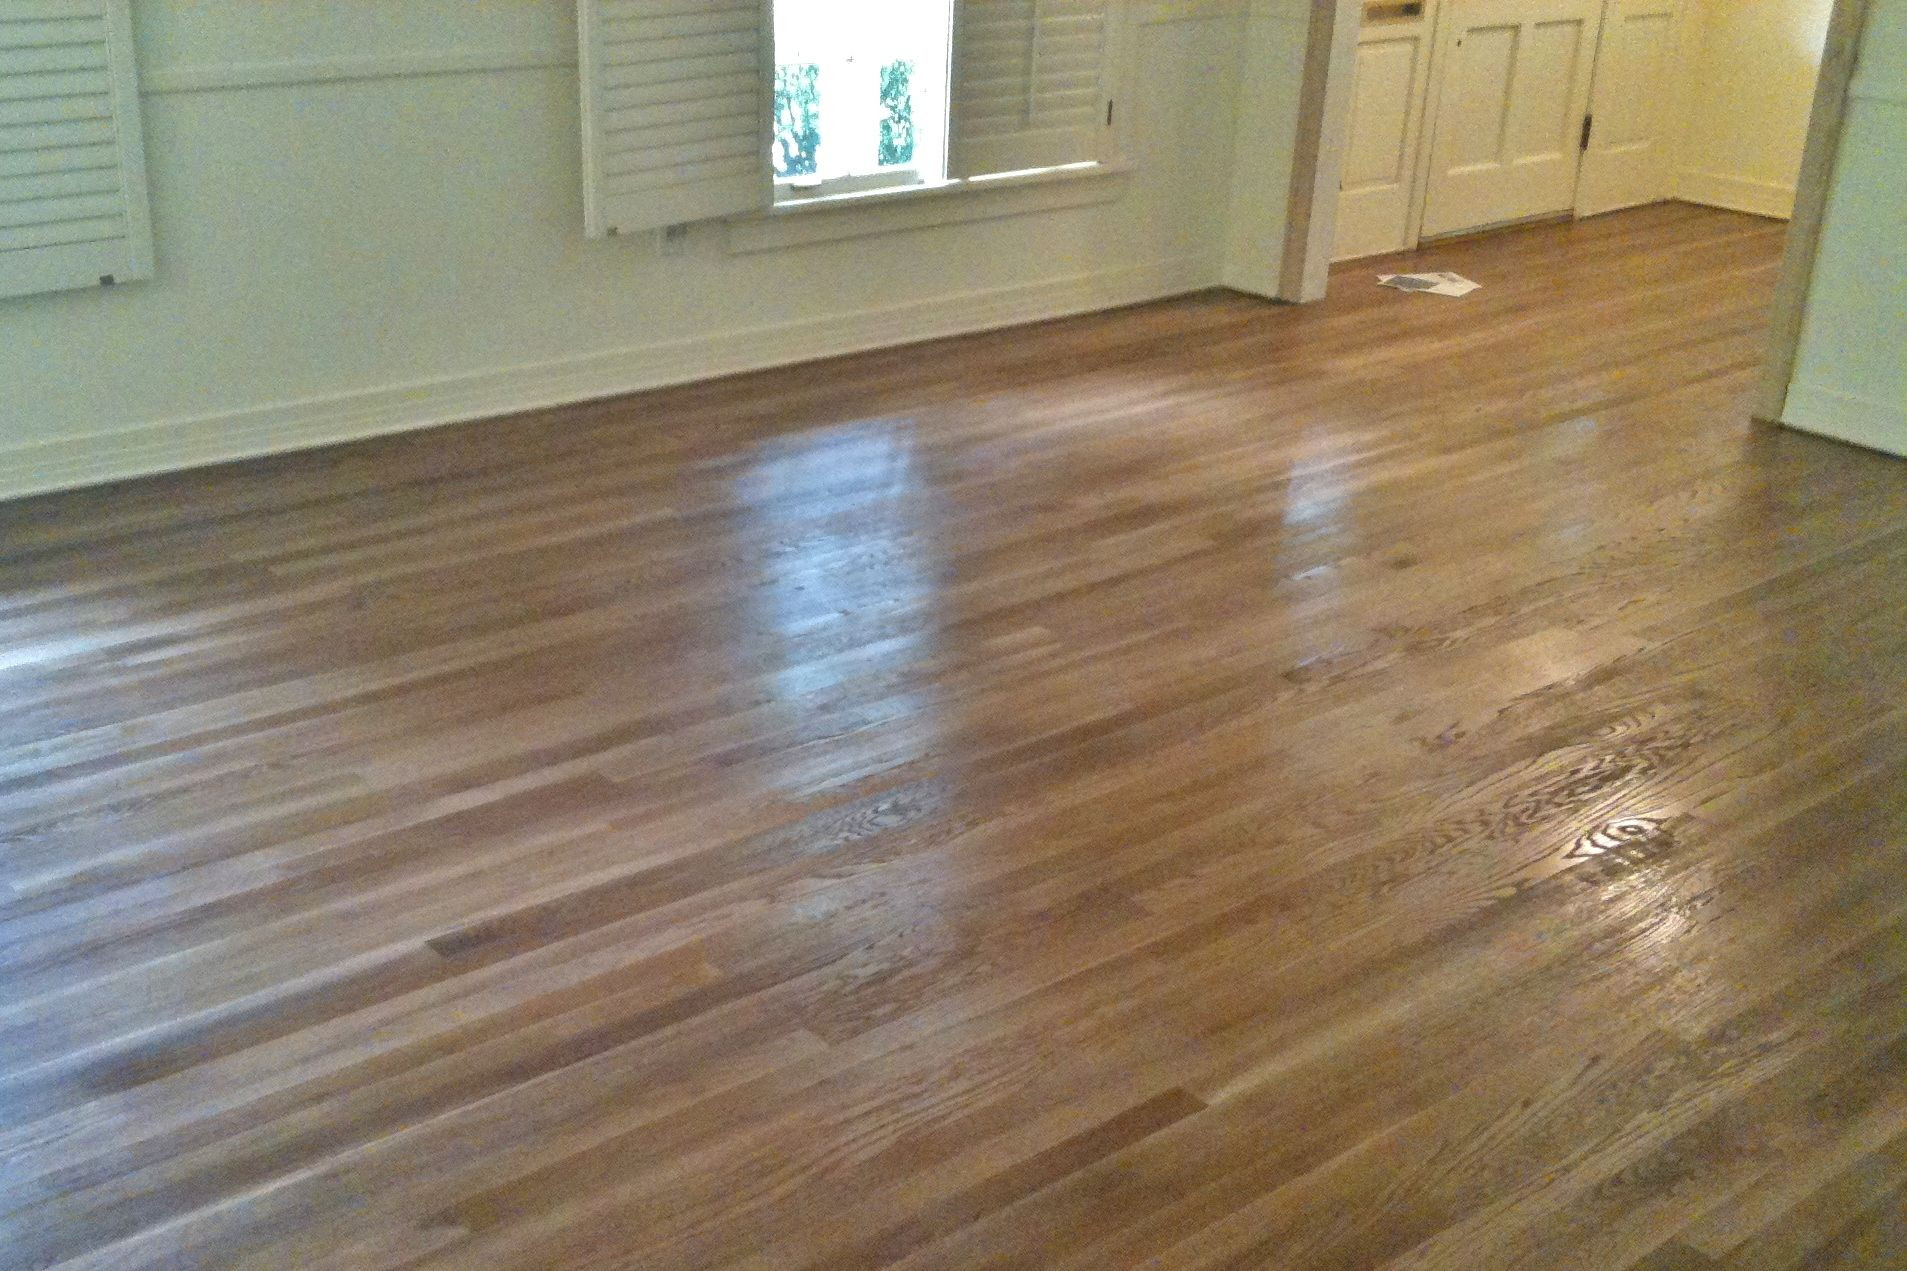 hardwood floor installation mn of oak meet special walnut home design pinterest flooring with minwax special walnut stain on oak hardwood floors